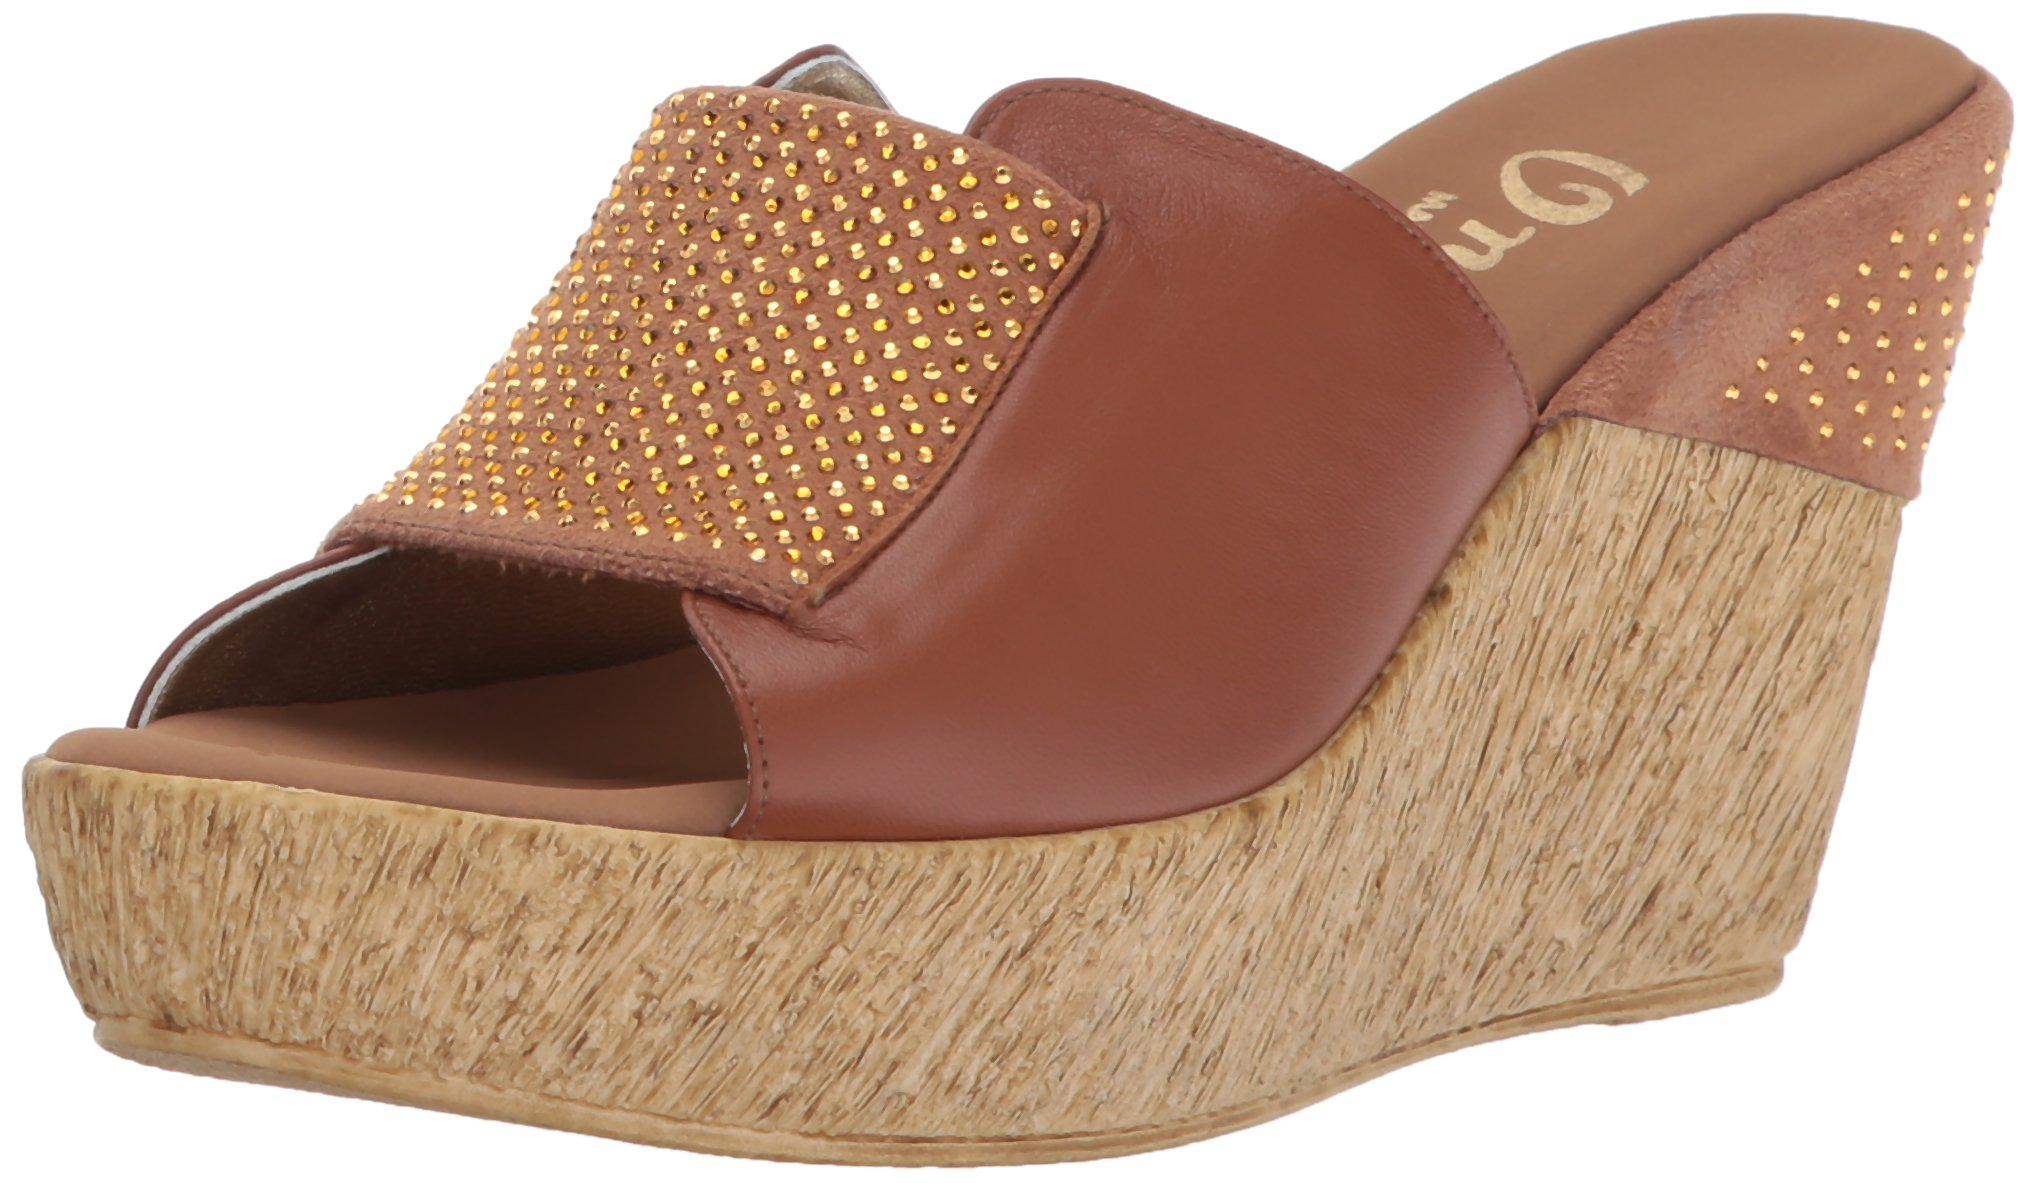 Onex Women's Meredith Wedge Sandal, Luggage, 5 M US by Onex